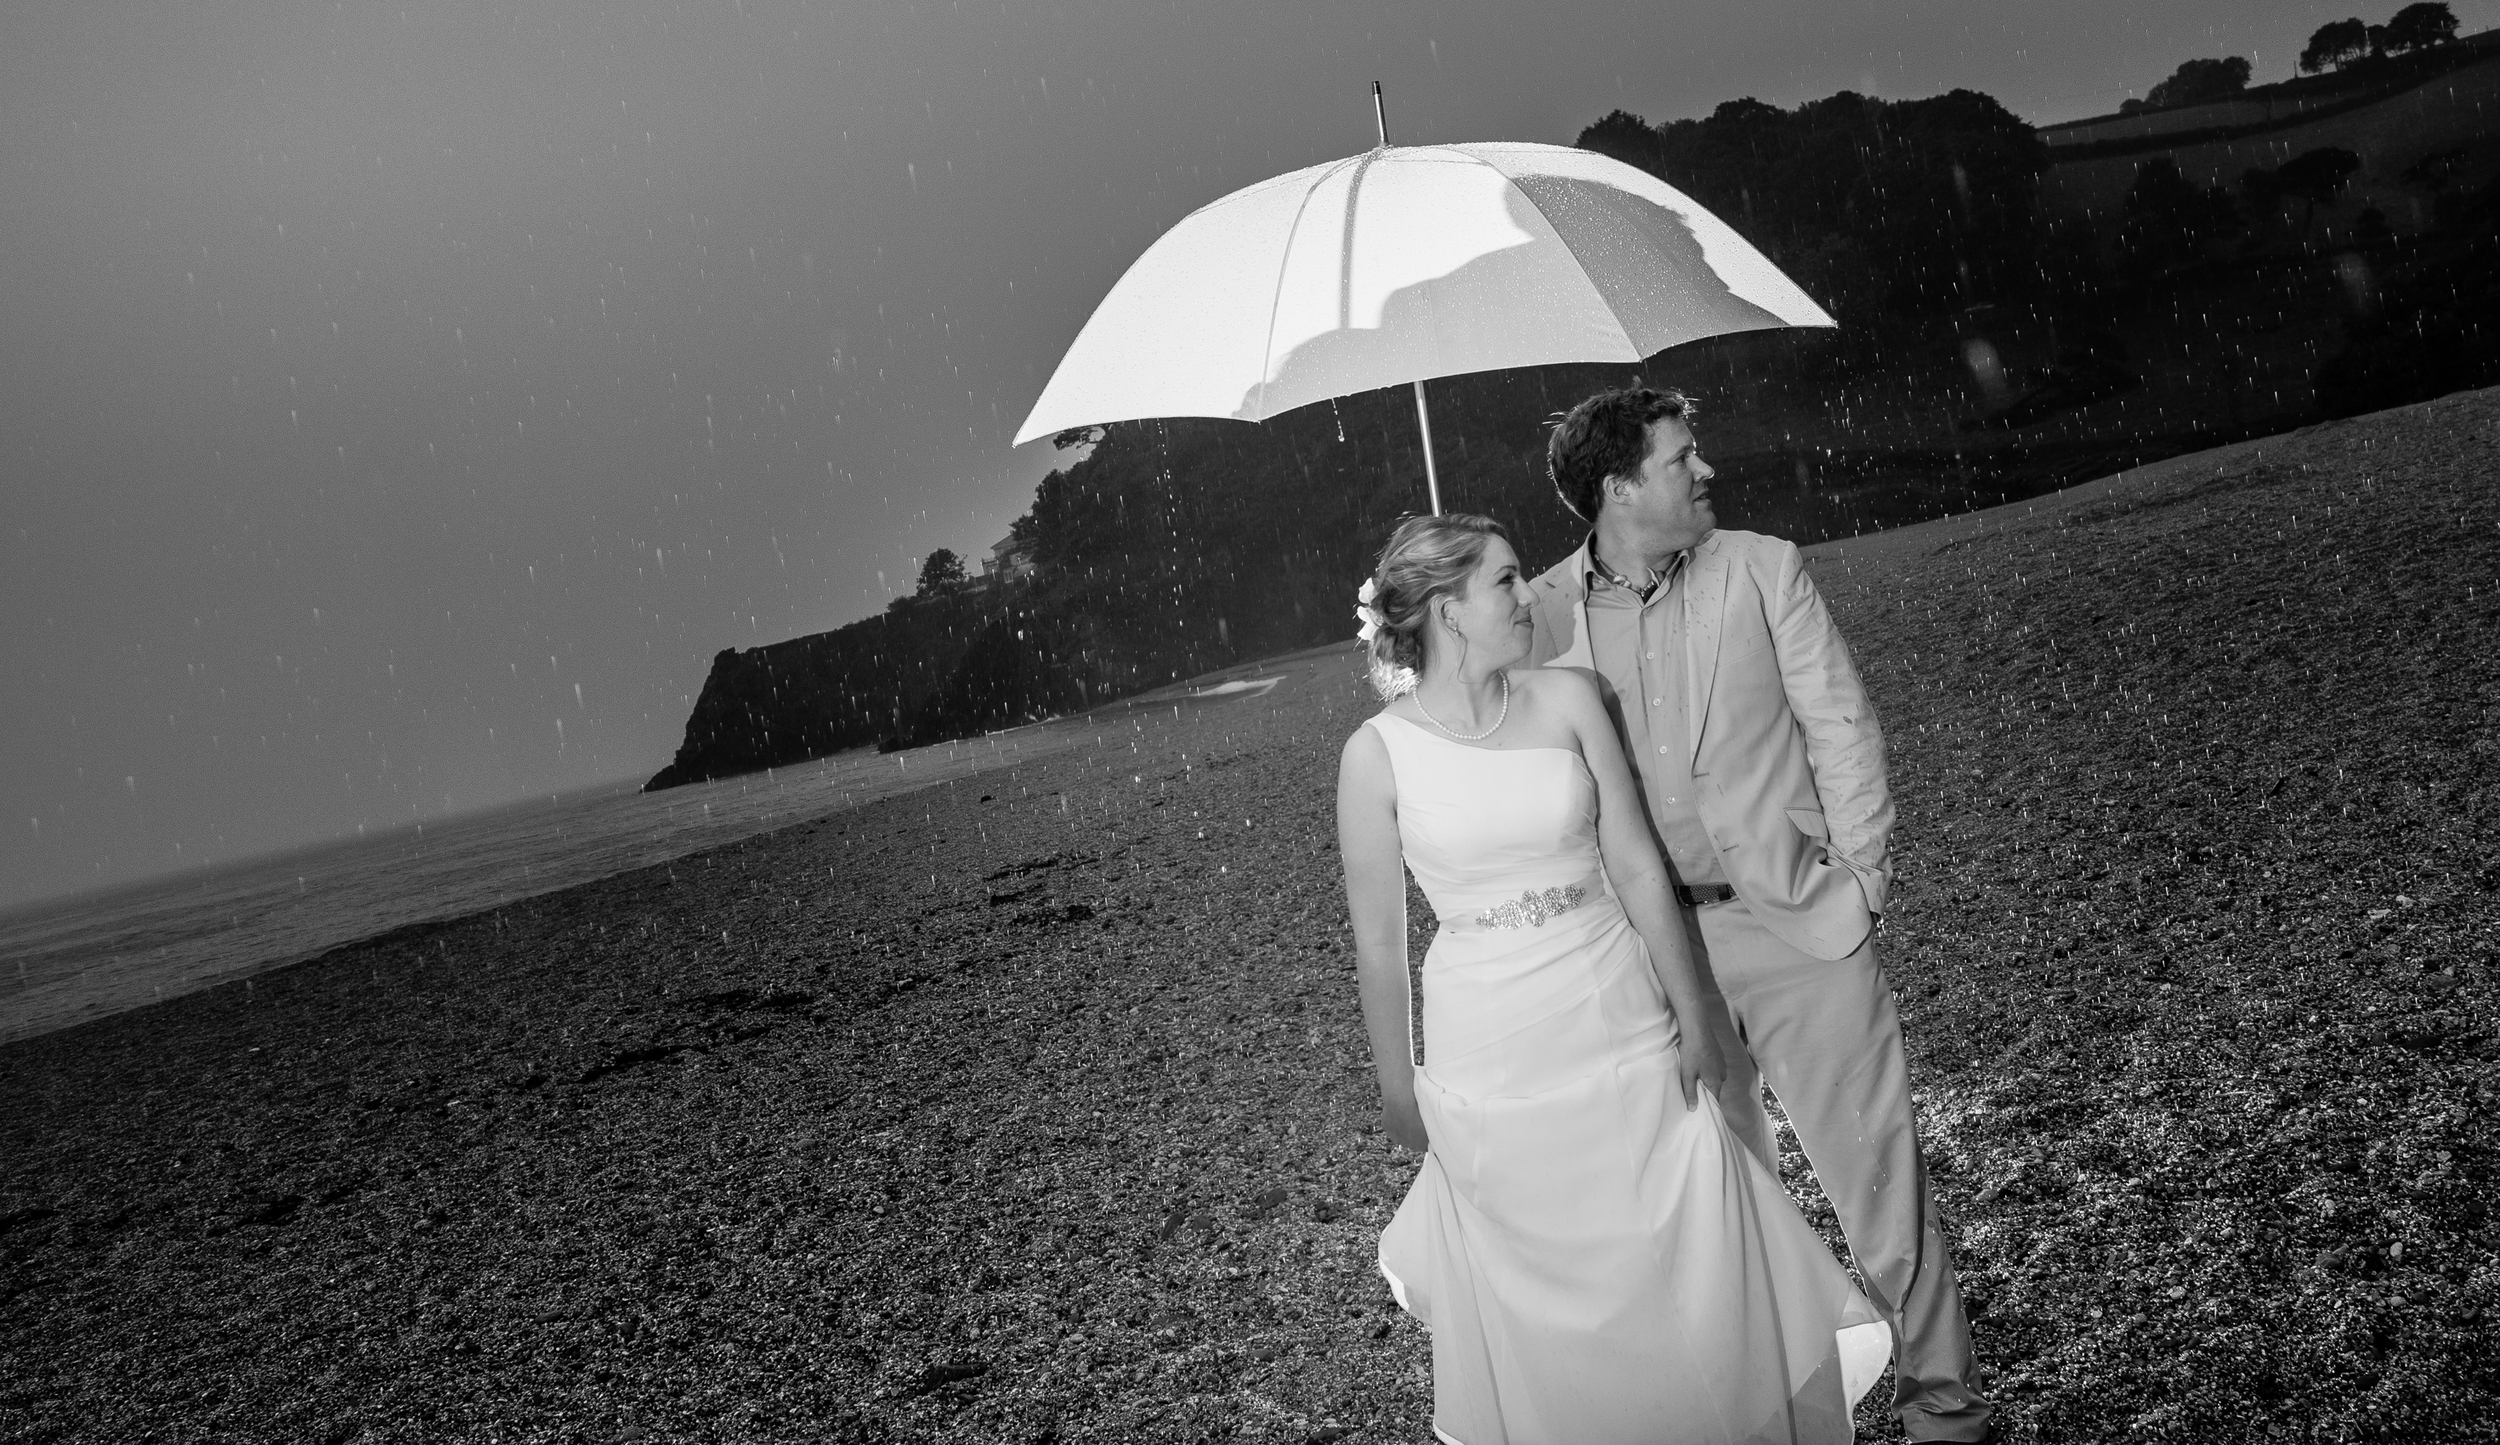 dartmouth wedding couple umbrella devon mono